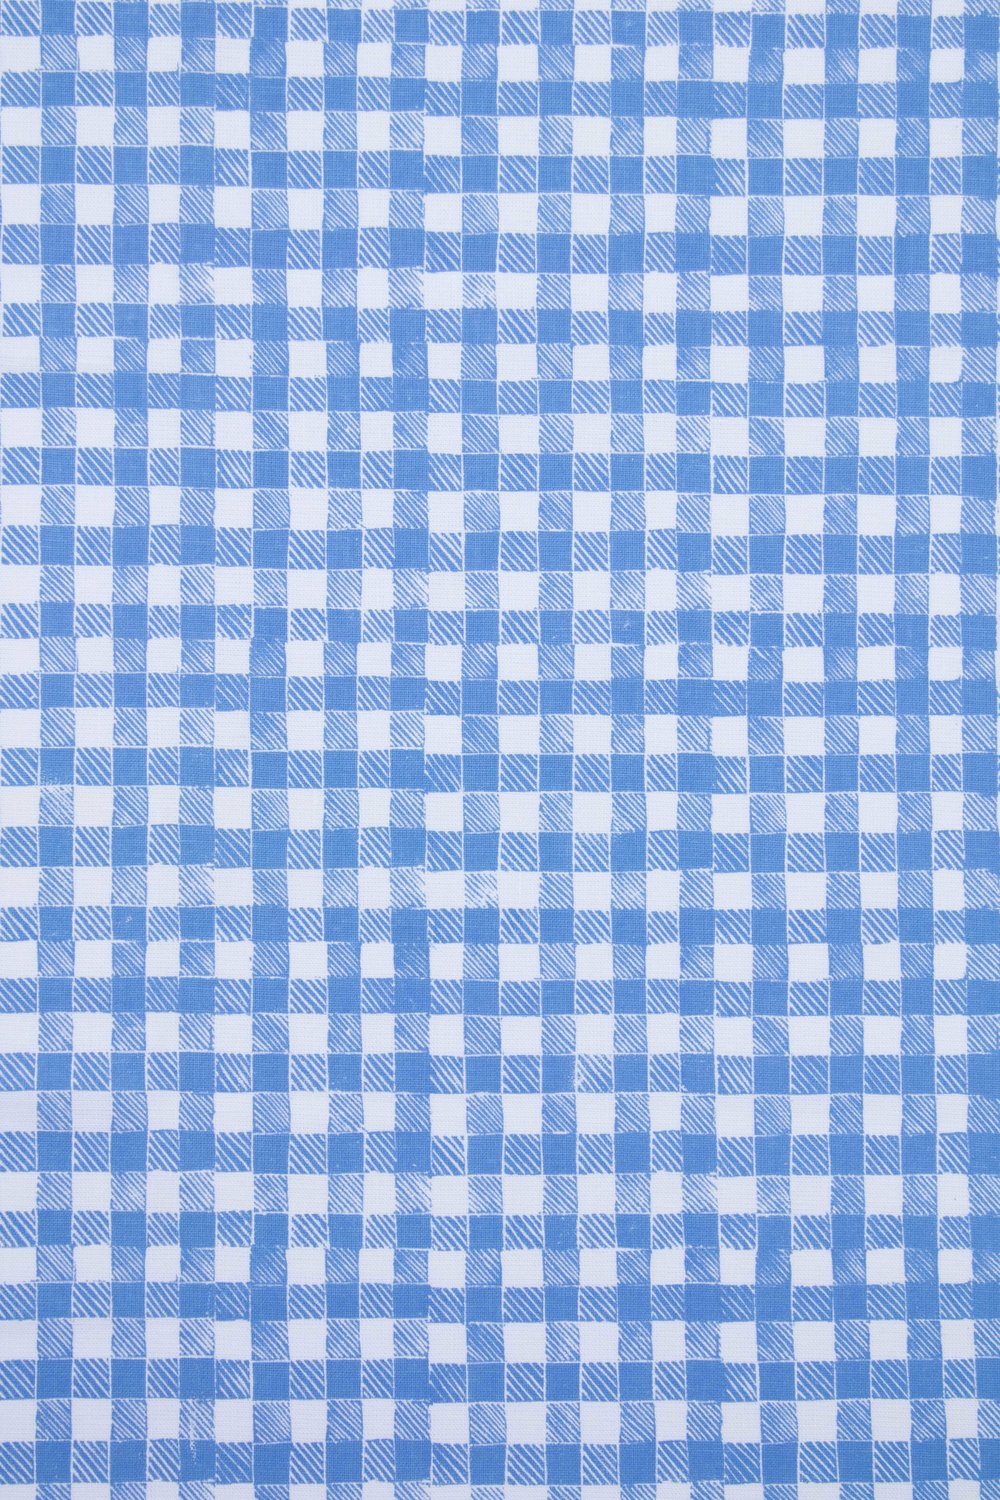 Block Print Gingham in Blue, KF250-01